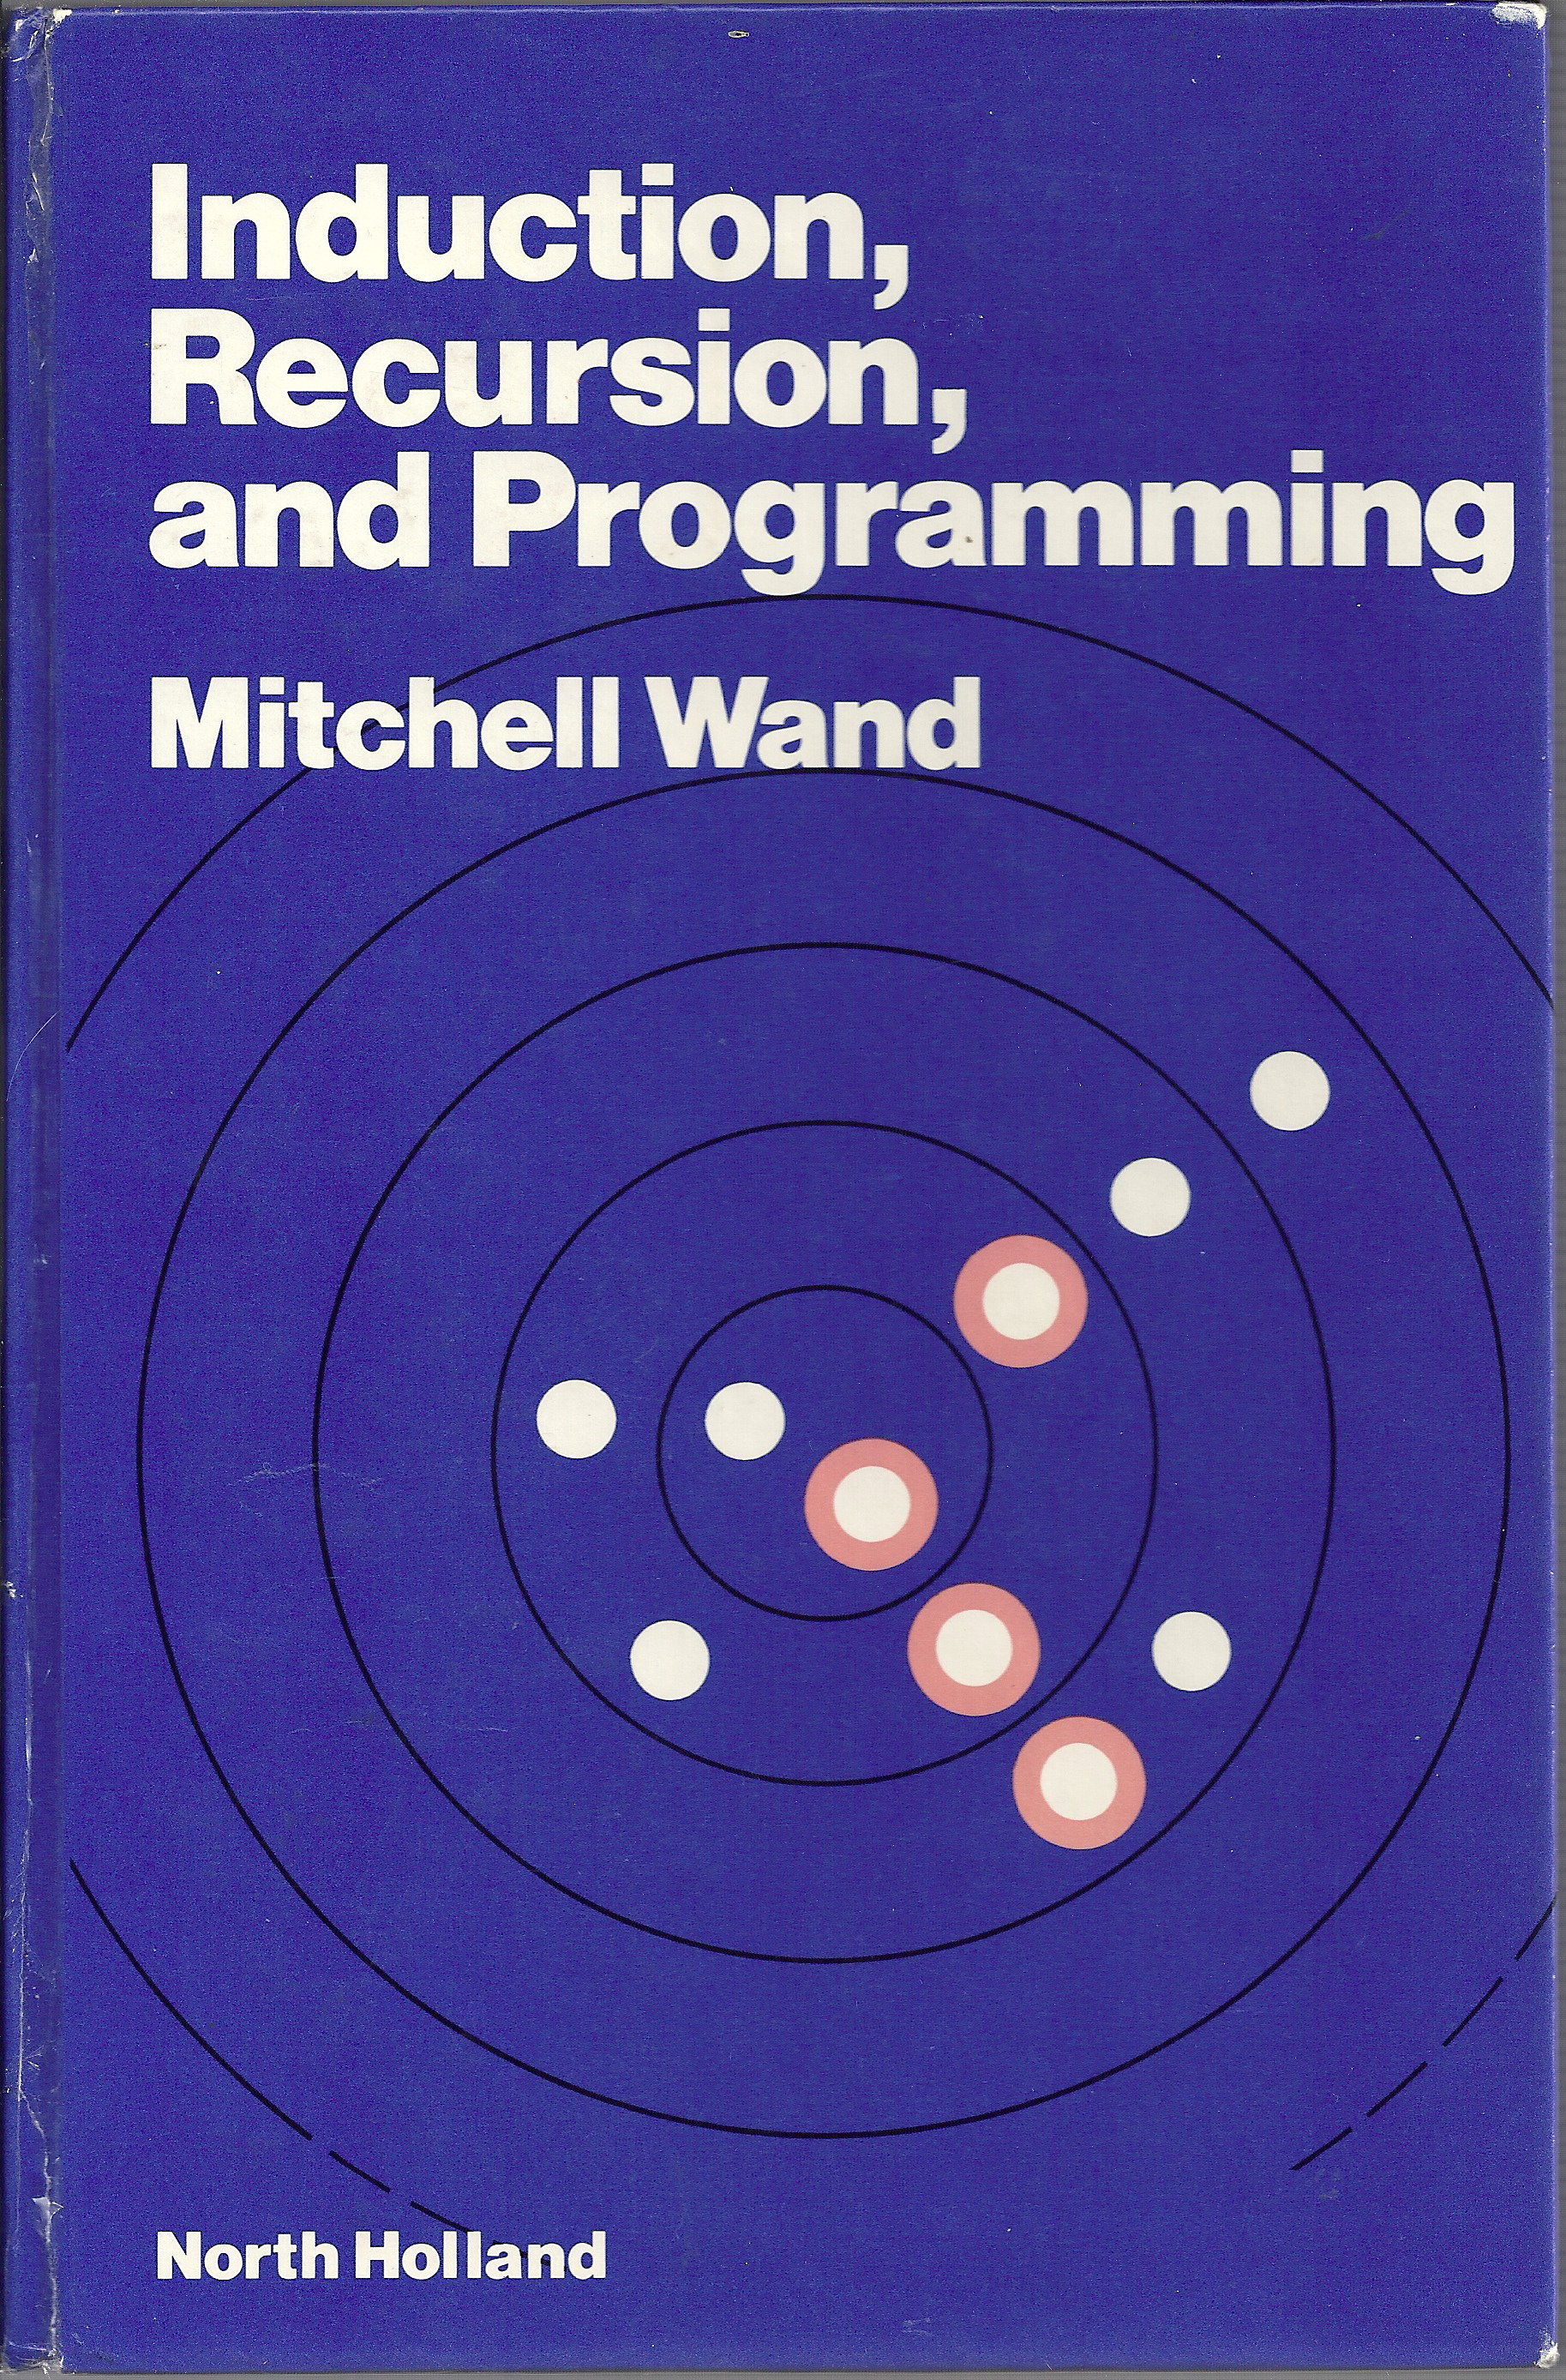 Induction, recursion, and programming